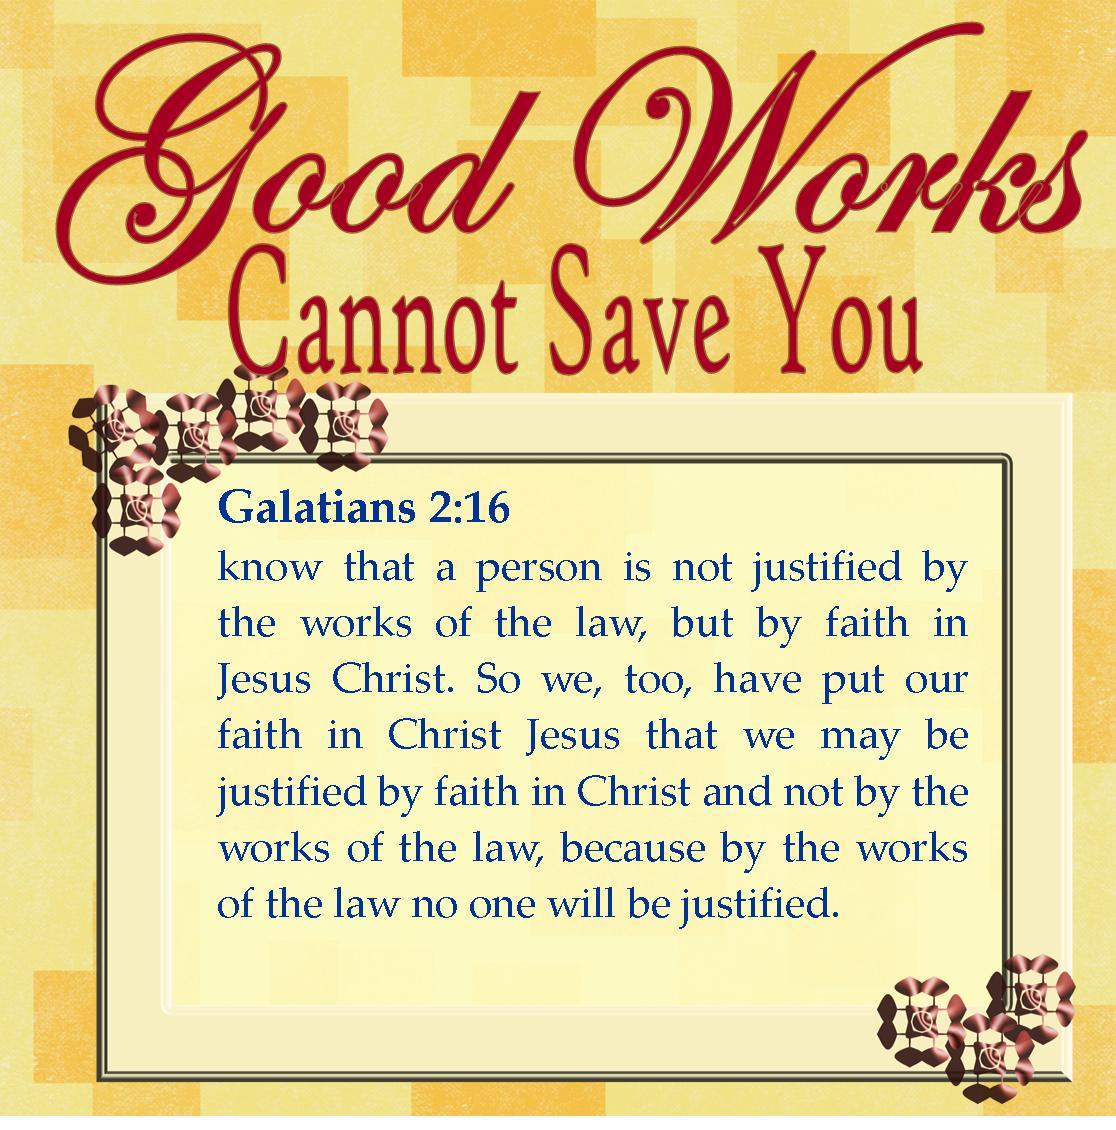 Your Good Works Cannot Save You | My Journey with God